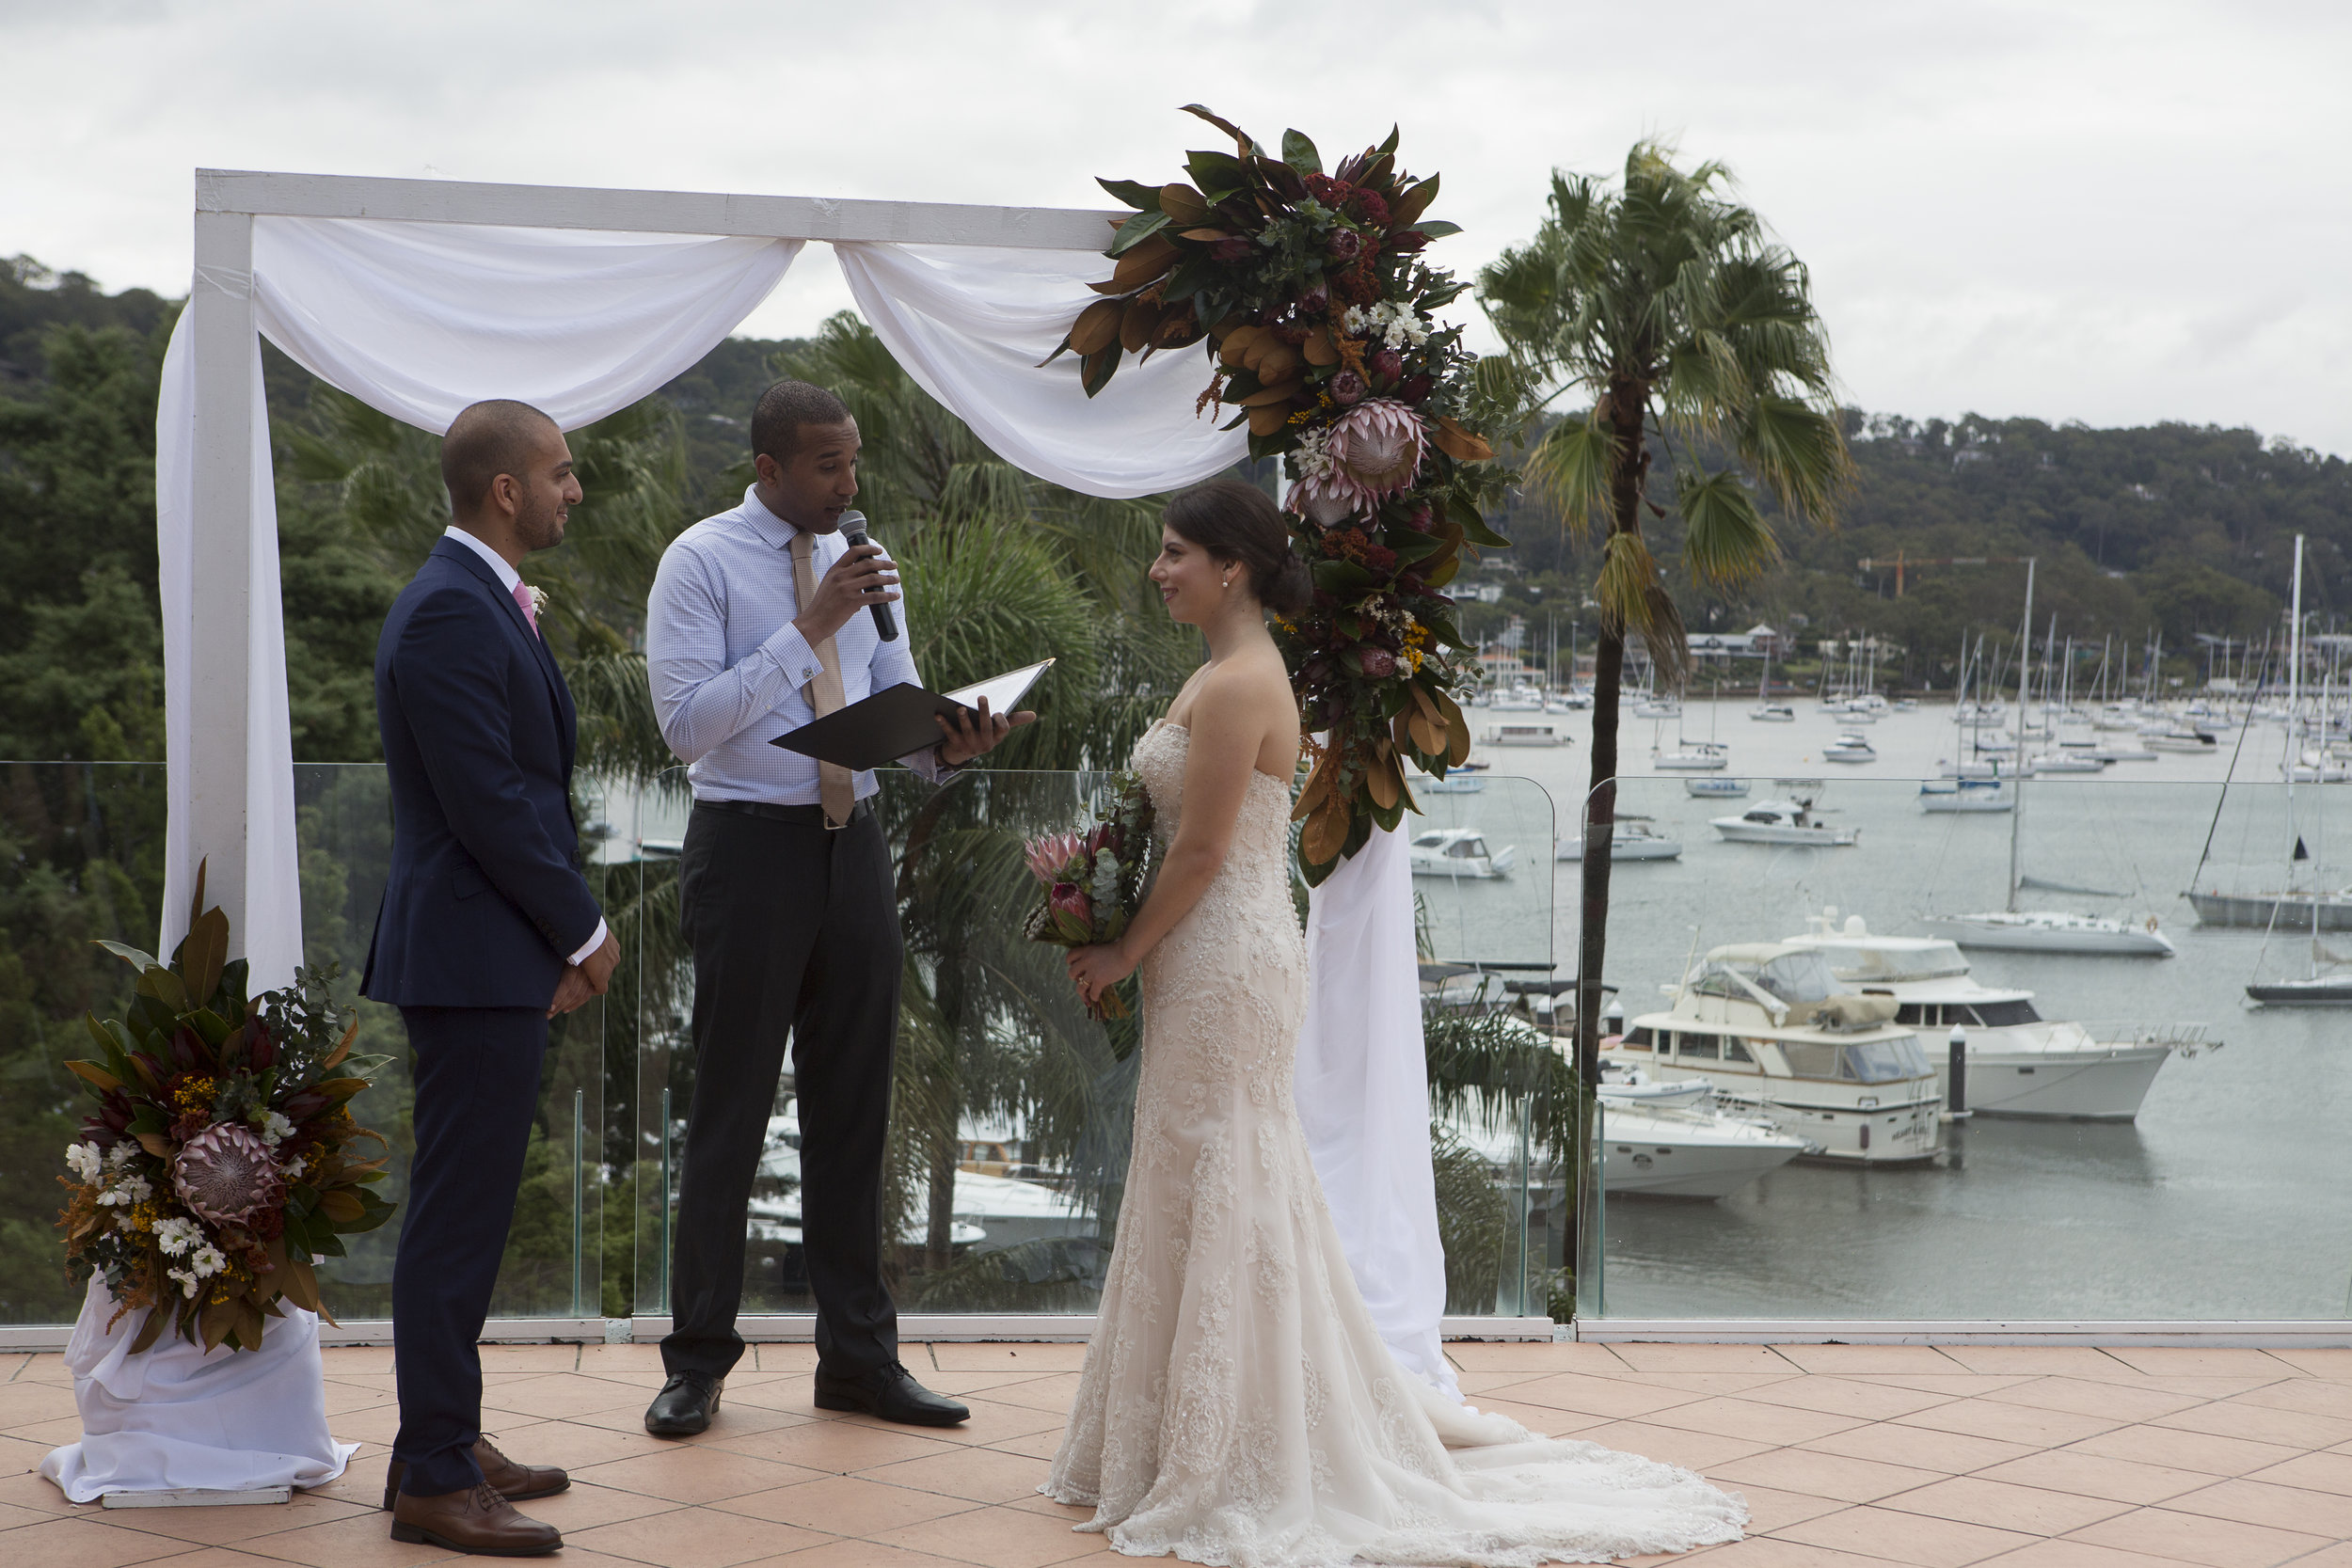 Wedding arch Australian natives.jpg